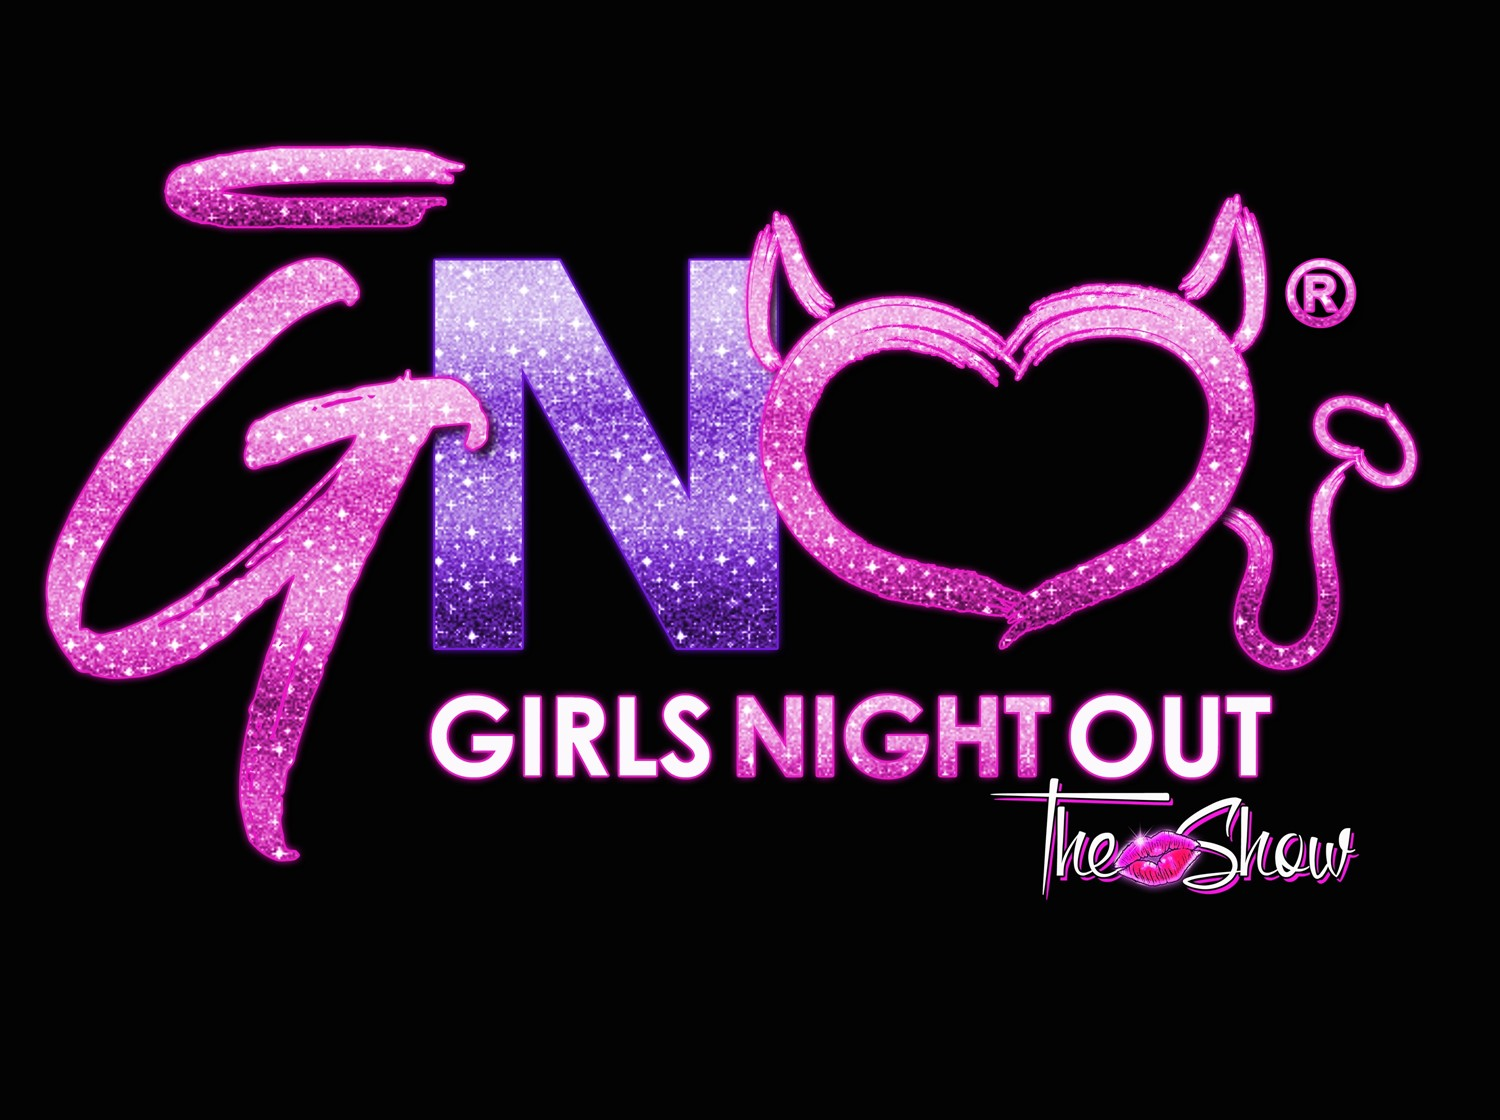 Blue Note (21+) Harrison, OH on Oct 27, 20:00@Blue Note - Buy tickets and Get information on Girls Night Out the Show tickets.girlsnightouttheshow.com